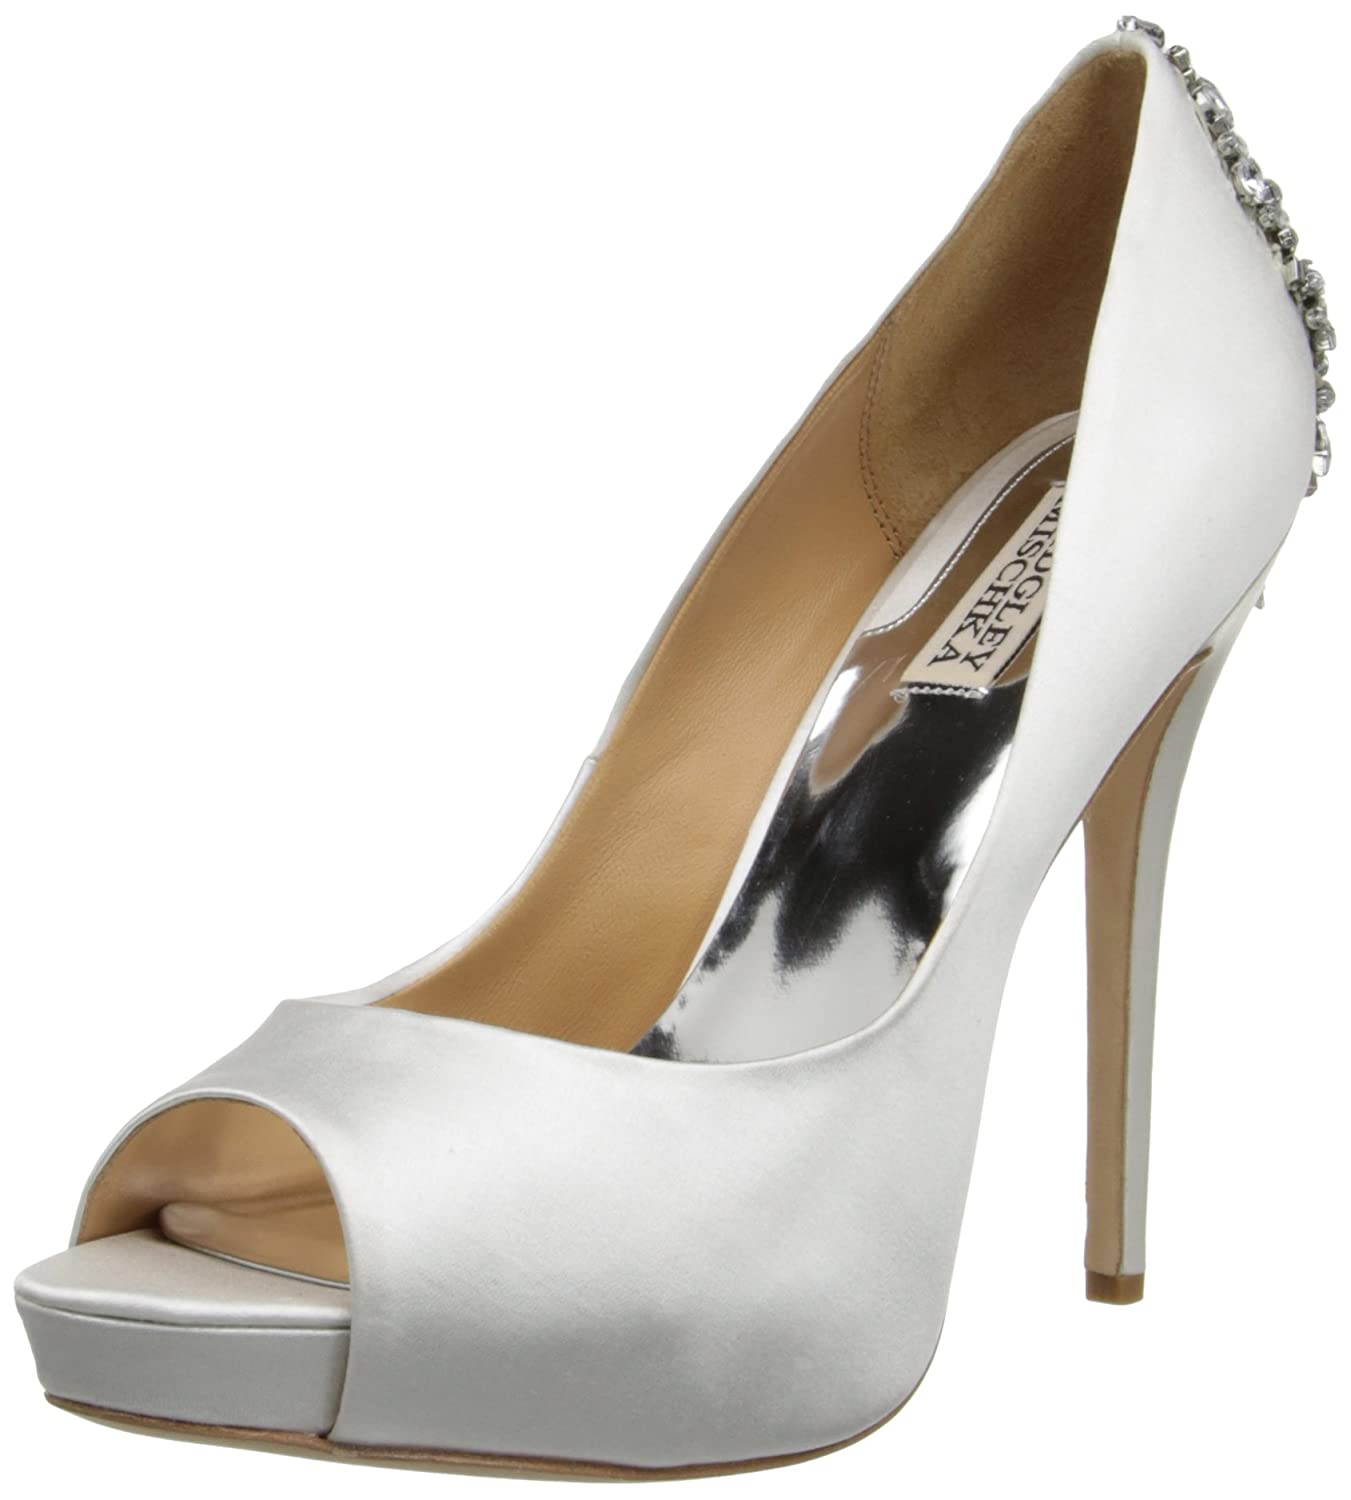 Badgley Mischka Women's Kiara Platform Pump B00HJ2HAP0 5 B(M) US|White